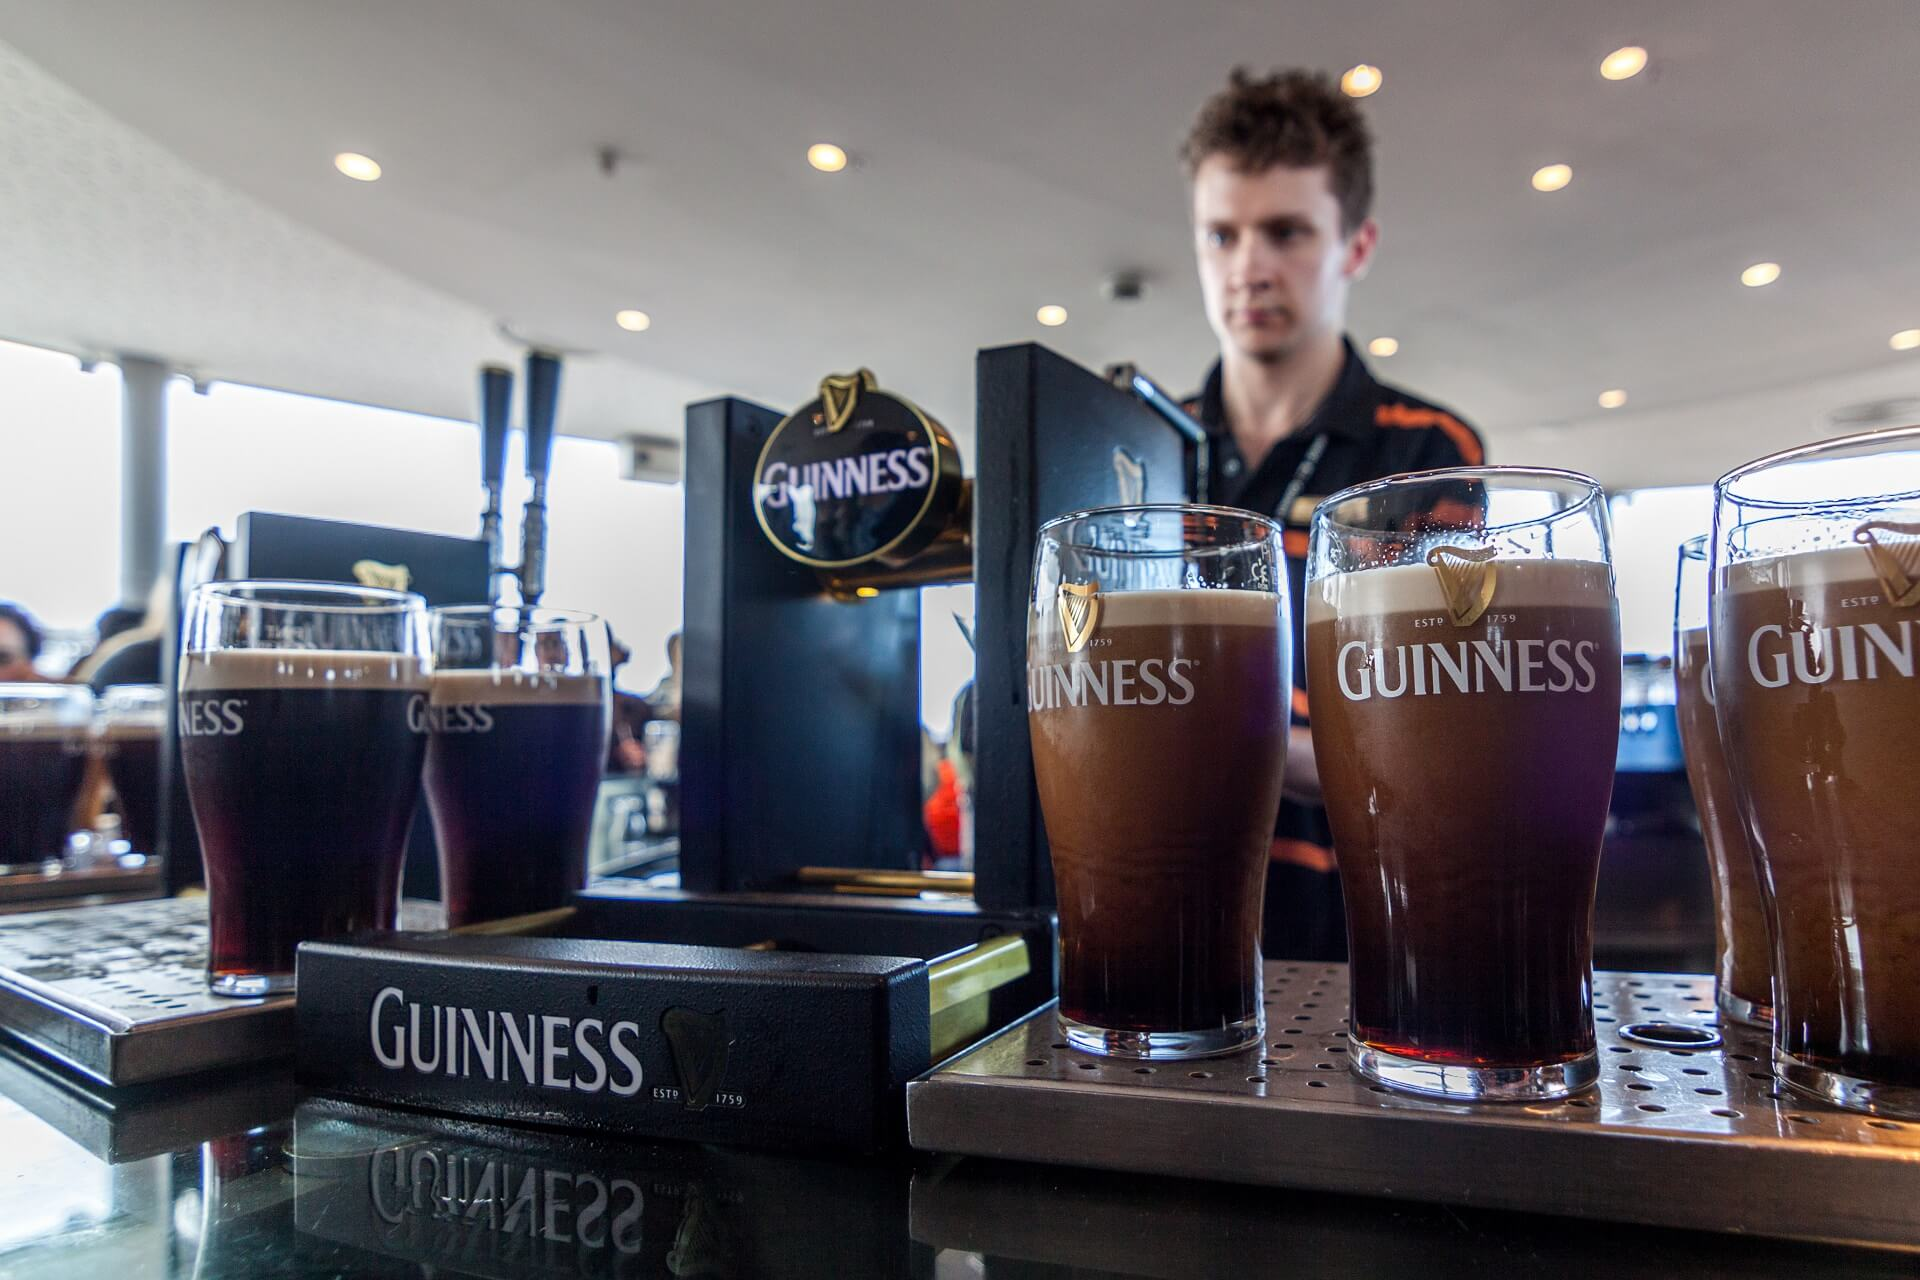 Ein Pint Guinness kann man in der Gravity Bar des Guinness Storehouse in Dublin genießen